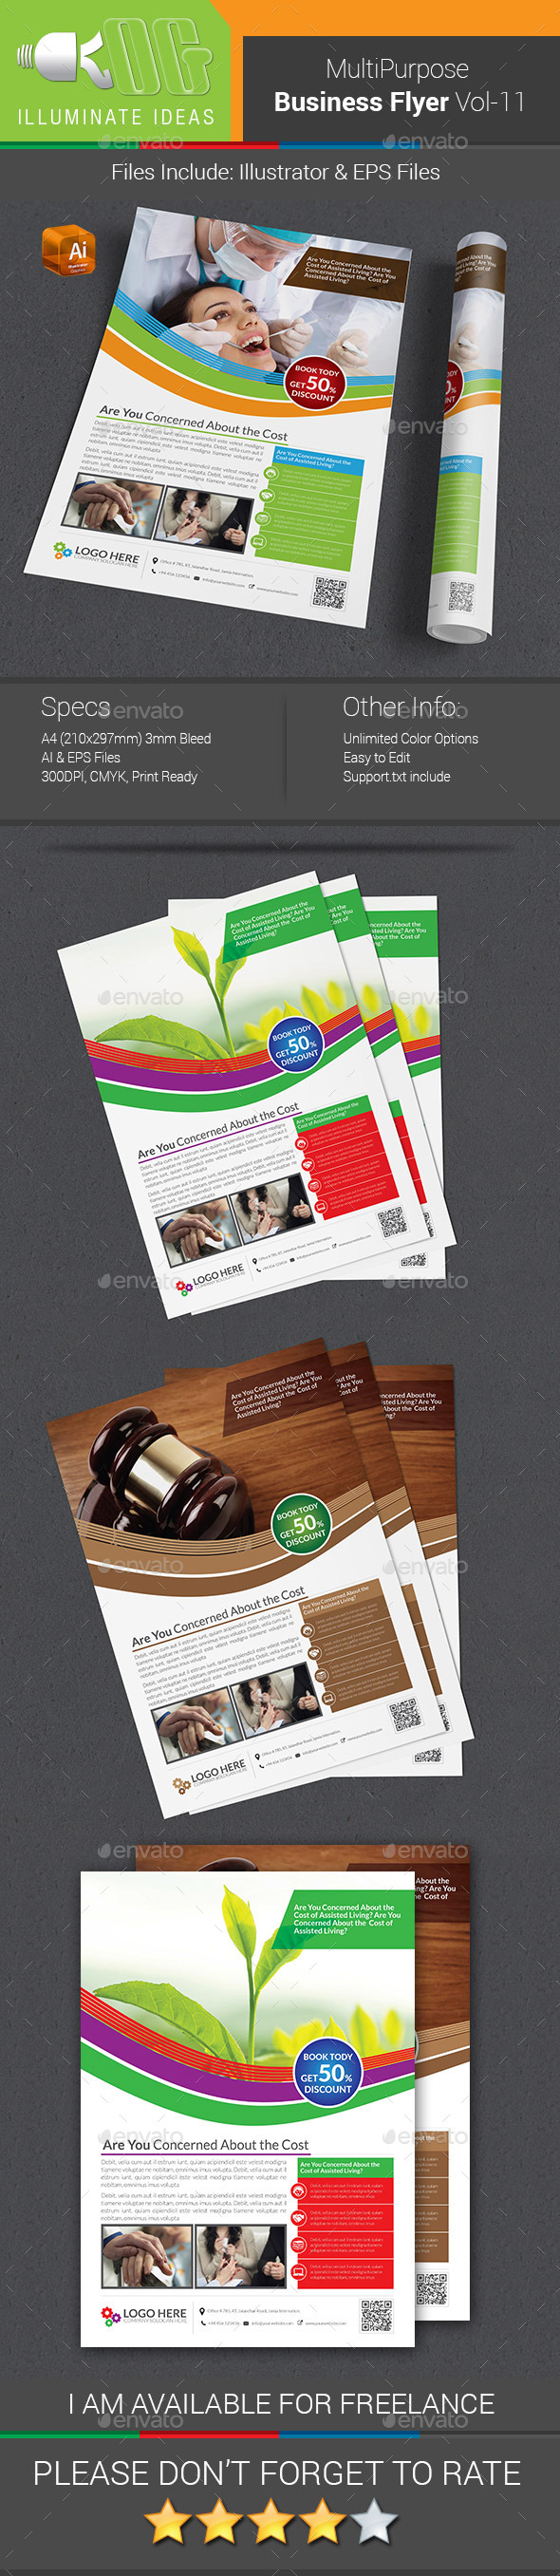 Multipurpose Business Flyer Template Vol-11